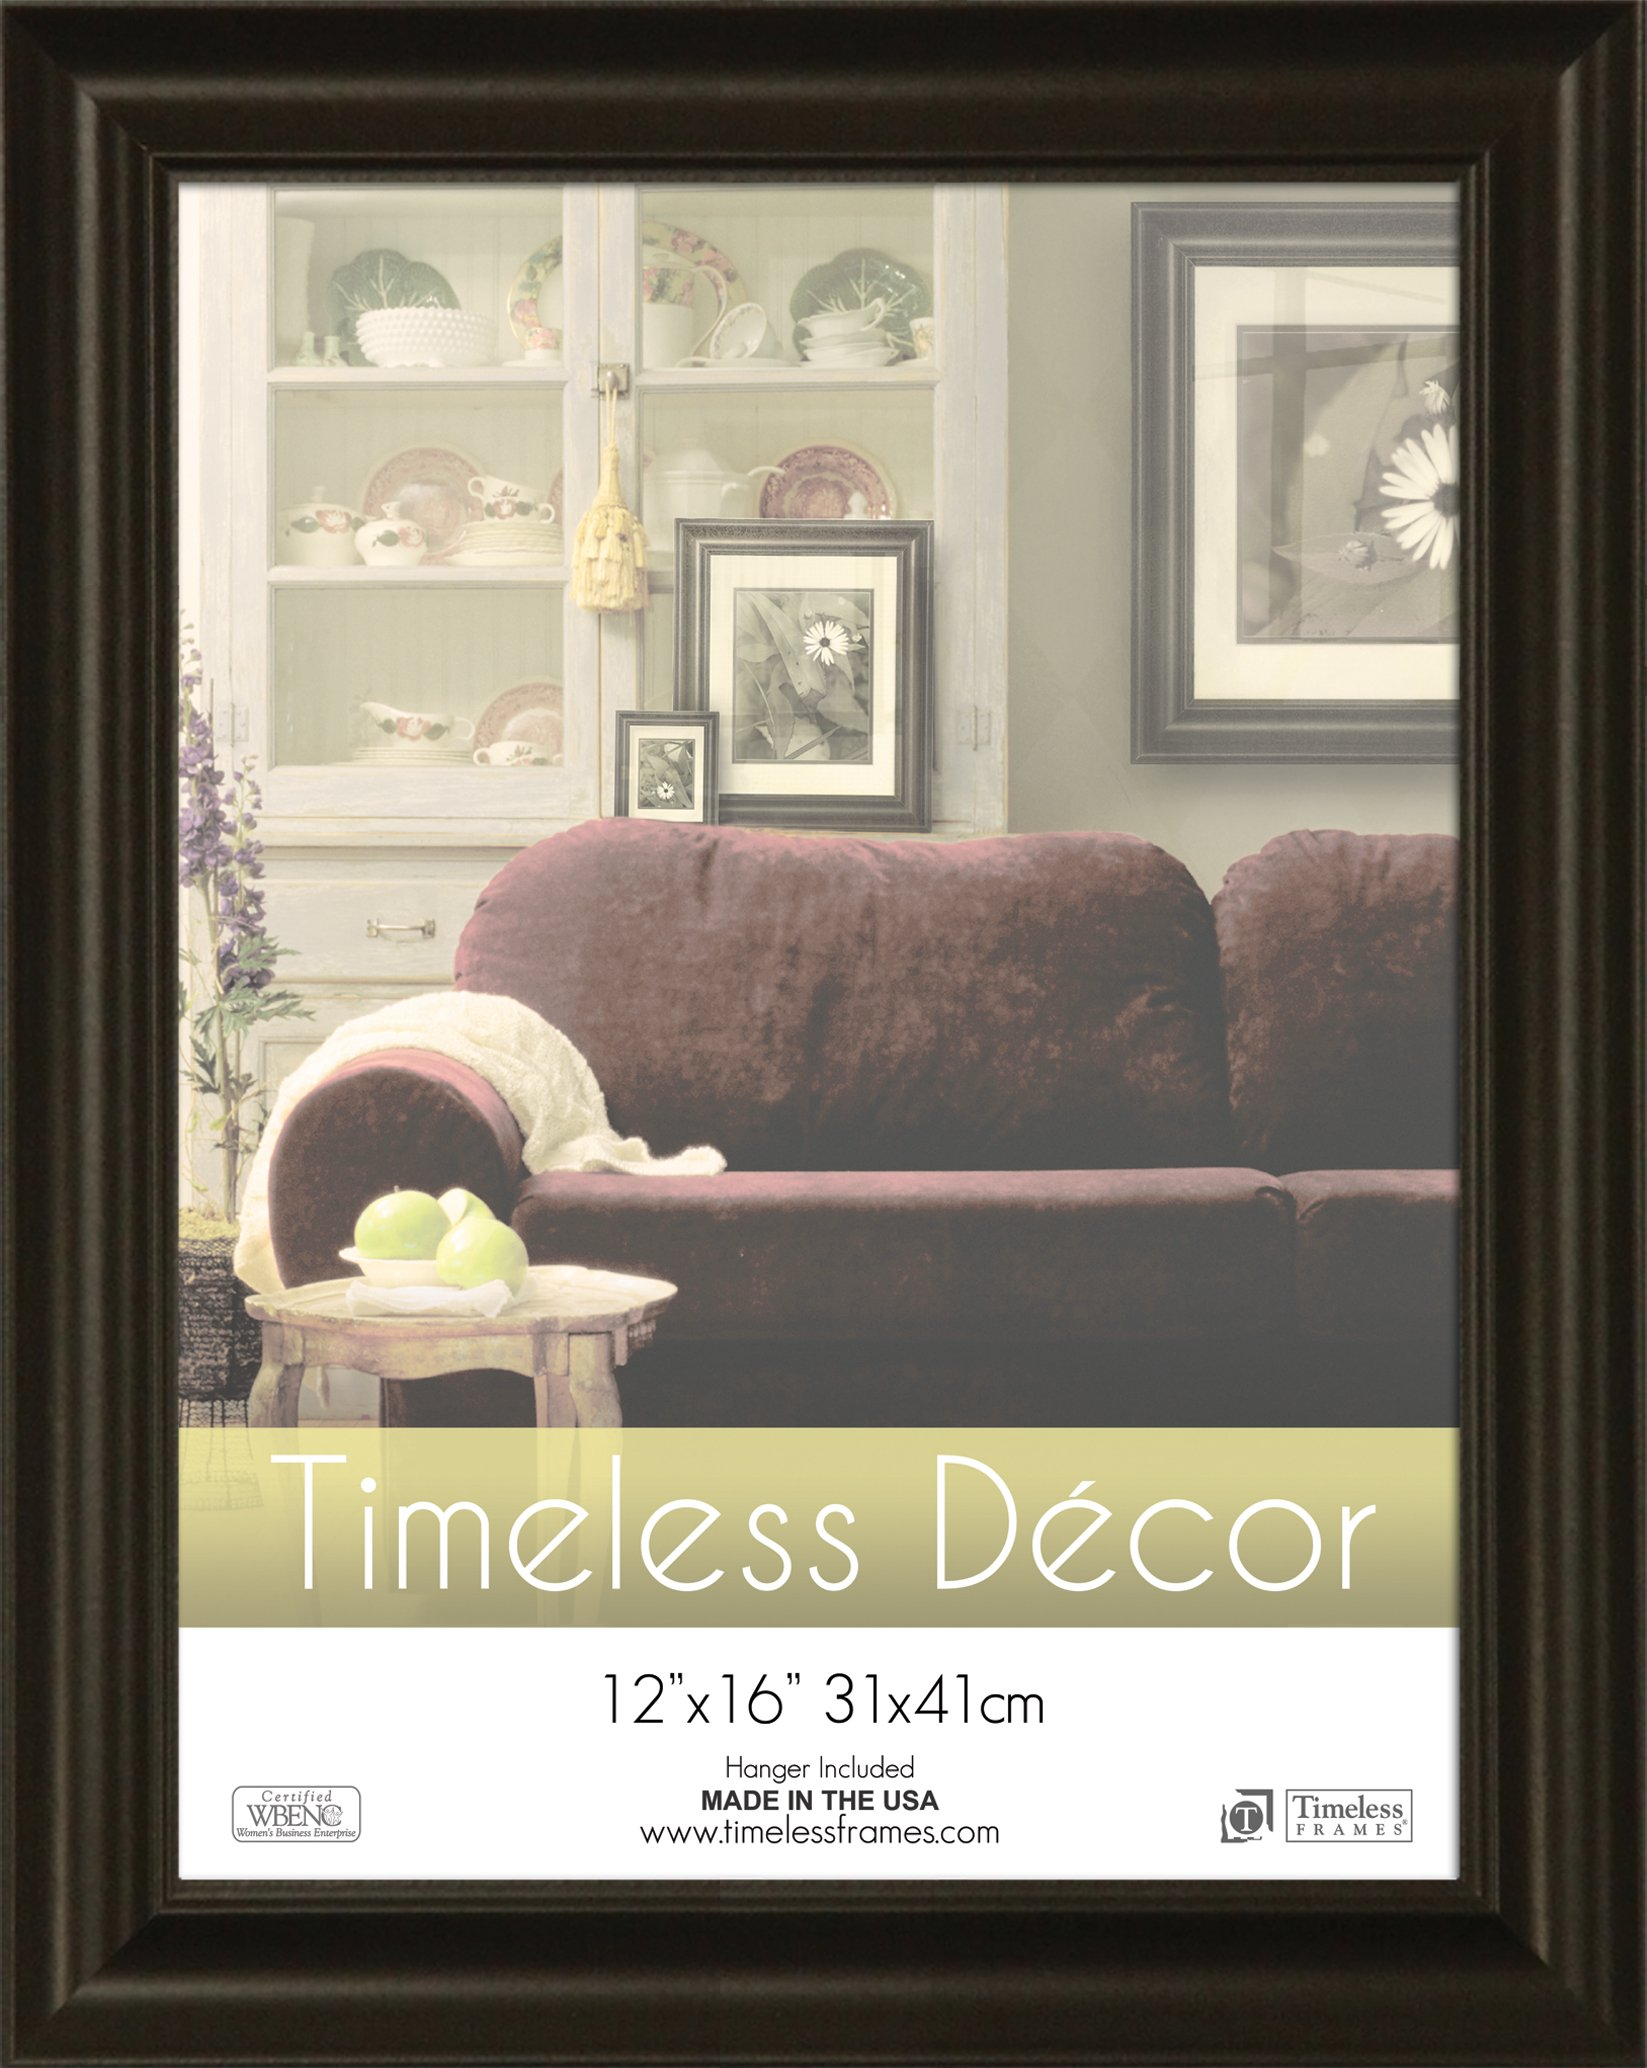 Timeless Frames 12x16 Inch Boca Picture Frame, Black by Timeless Expressions